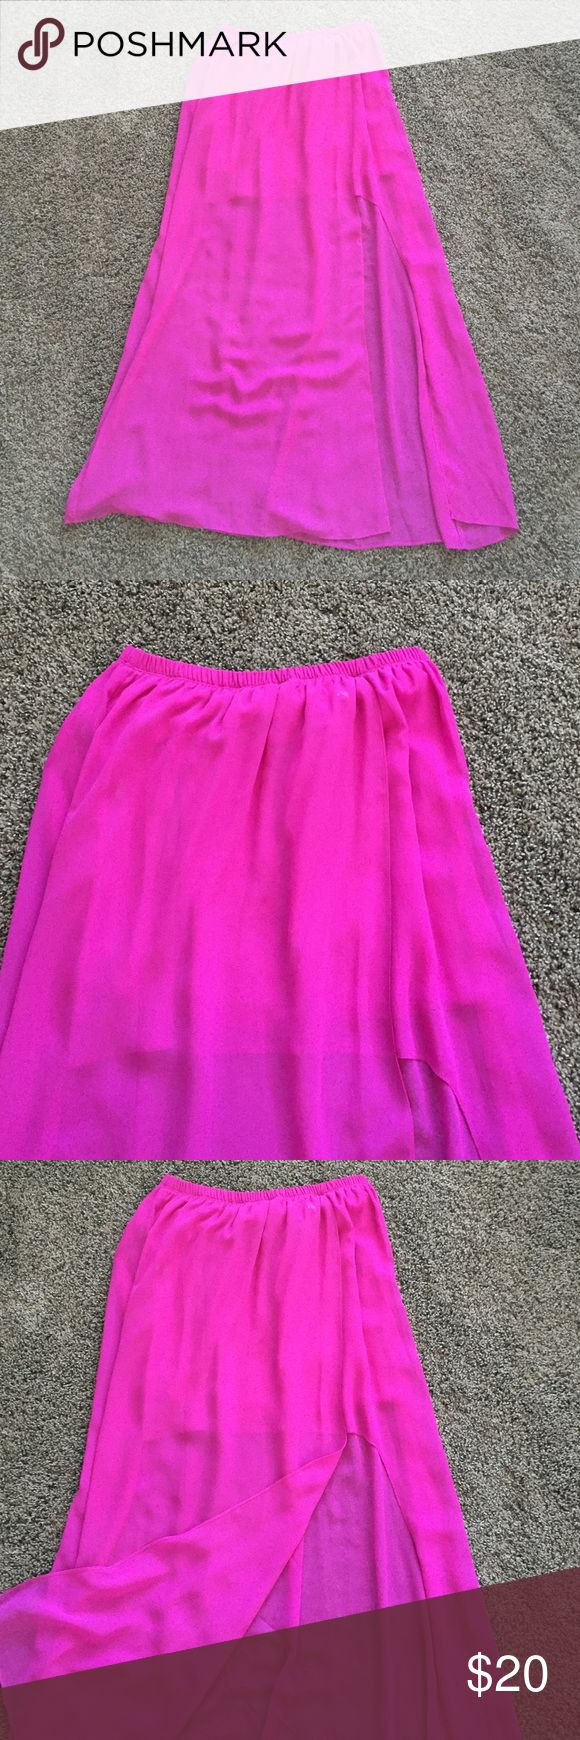 Hot pink chiffon maxi skirt! Hot pink chiffon maxi skirt! Elastic waist band, skirt is lined to above the knee, slit up the side to above the knee! SOO cute and worn twice! Skirts Maxi